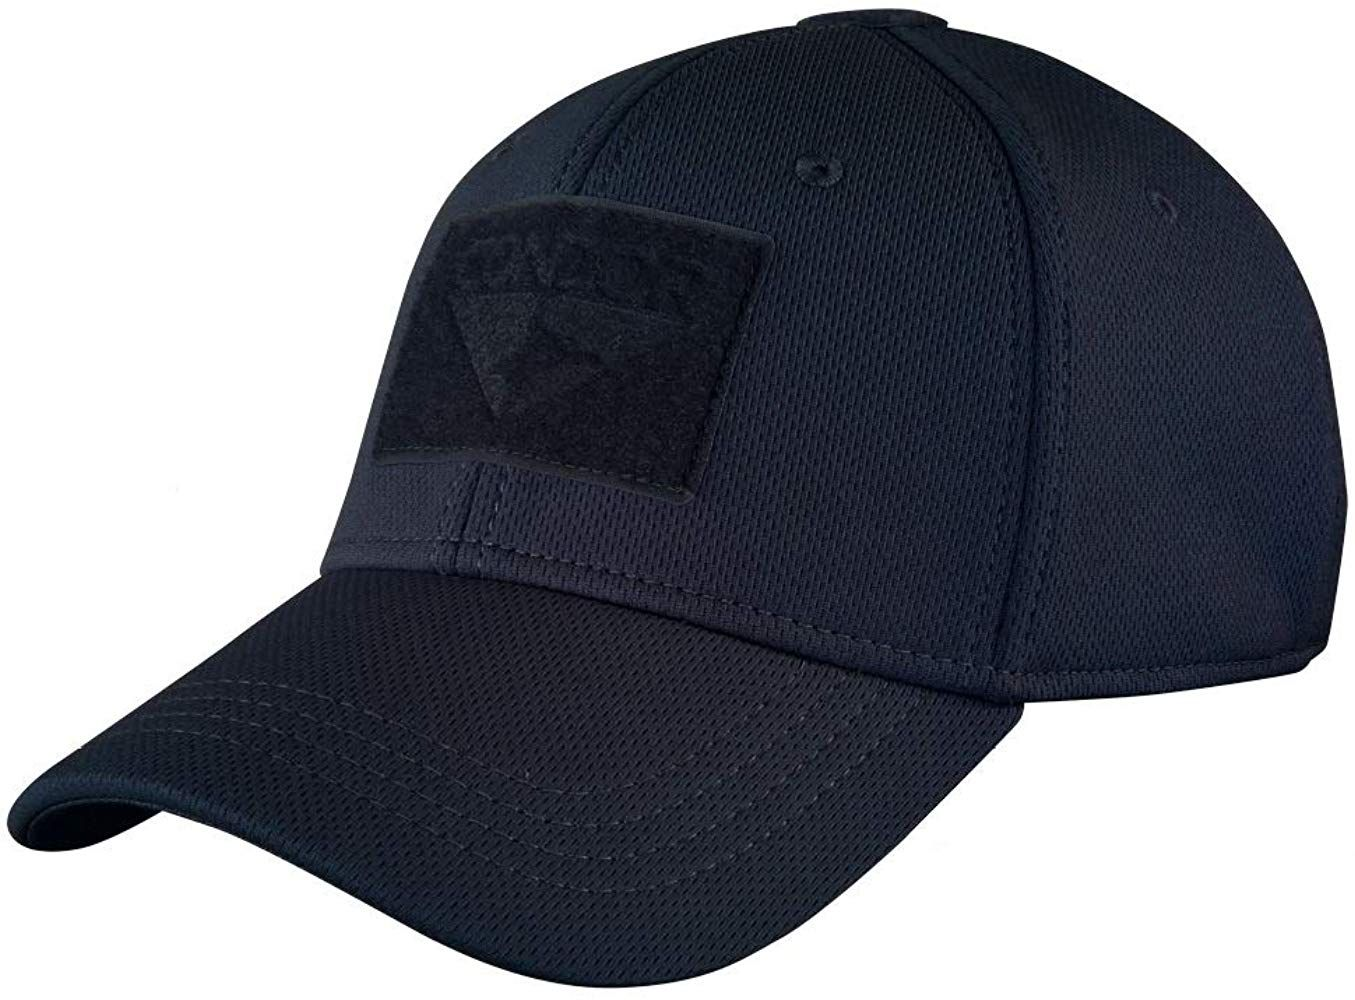 Condor flex cap navy highly breathable two sizes